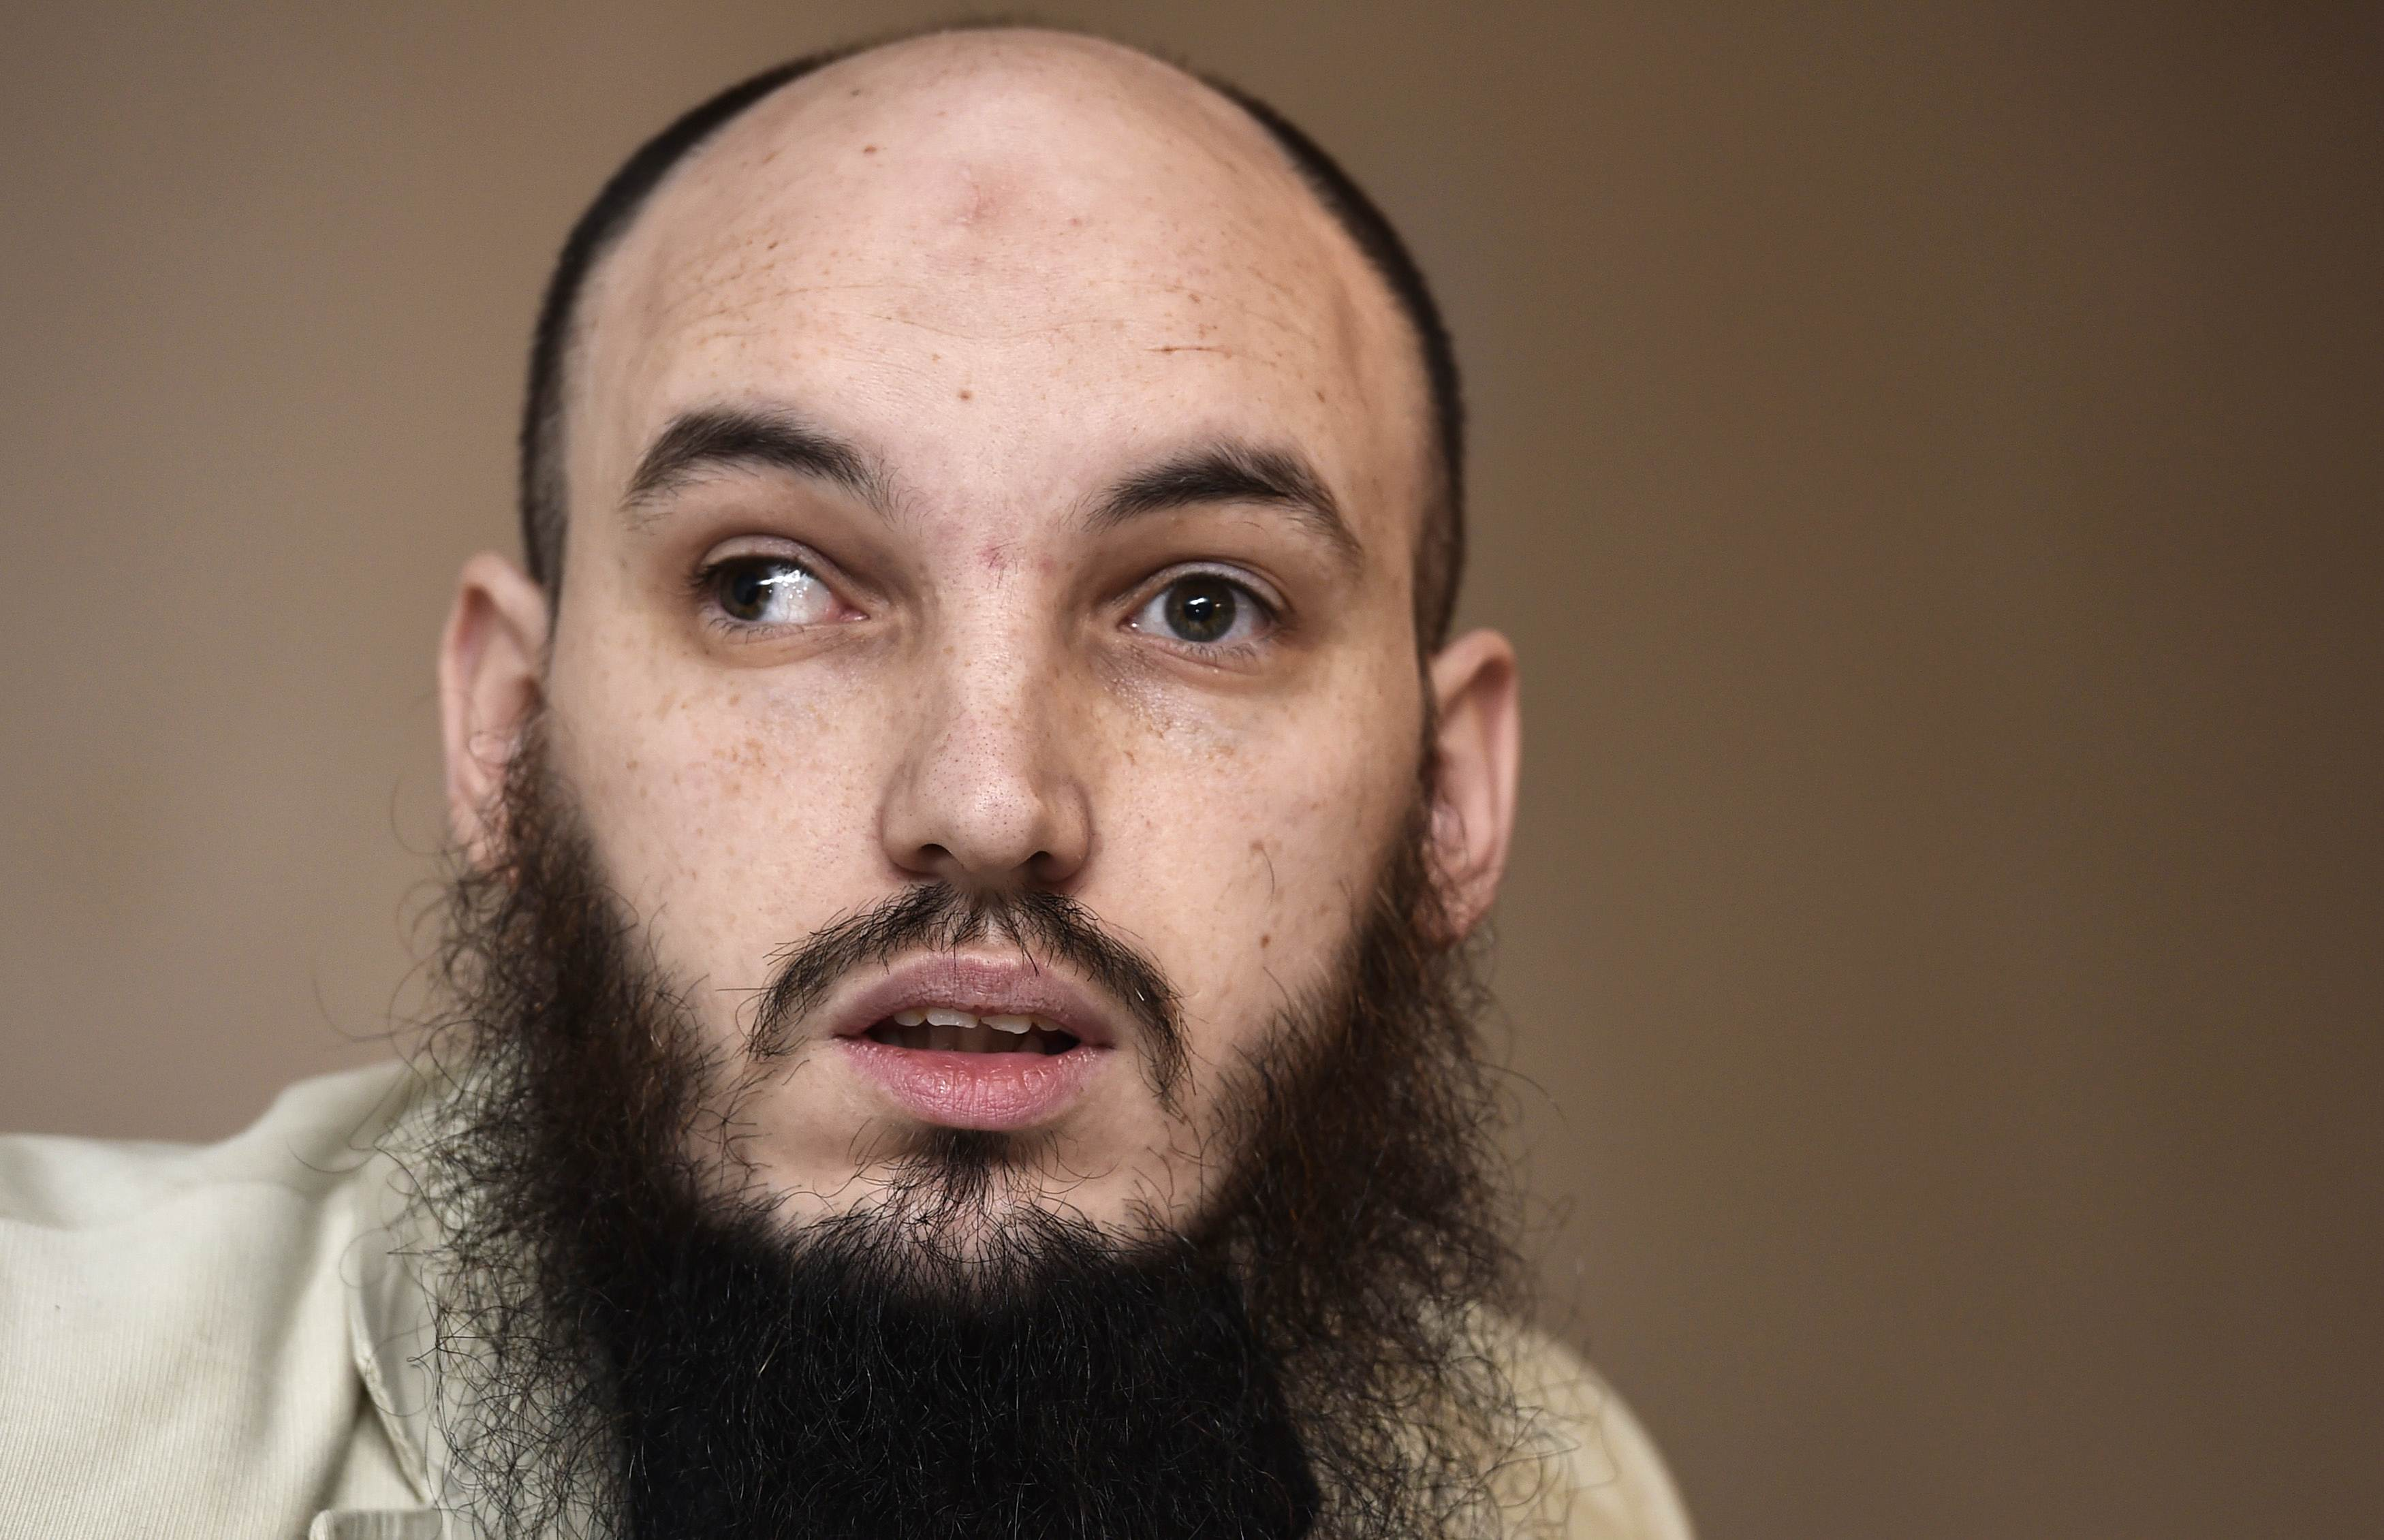 Ceri Bullivant from human rights organization Cage speaks Thursday during a news conference in London. Investigators believe the masked killer known as 'Jihadi John'  is a British man named Mohammed Emwazi, two U.S. government sources said on Thursday. Asim Qureshi, the research director of the charity Cage, which worked with Emwazi since 2009, said that although he could not be certain Emwazi was John, there were some 'striking similarities.' | REUTERS